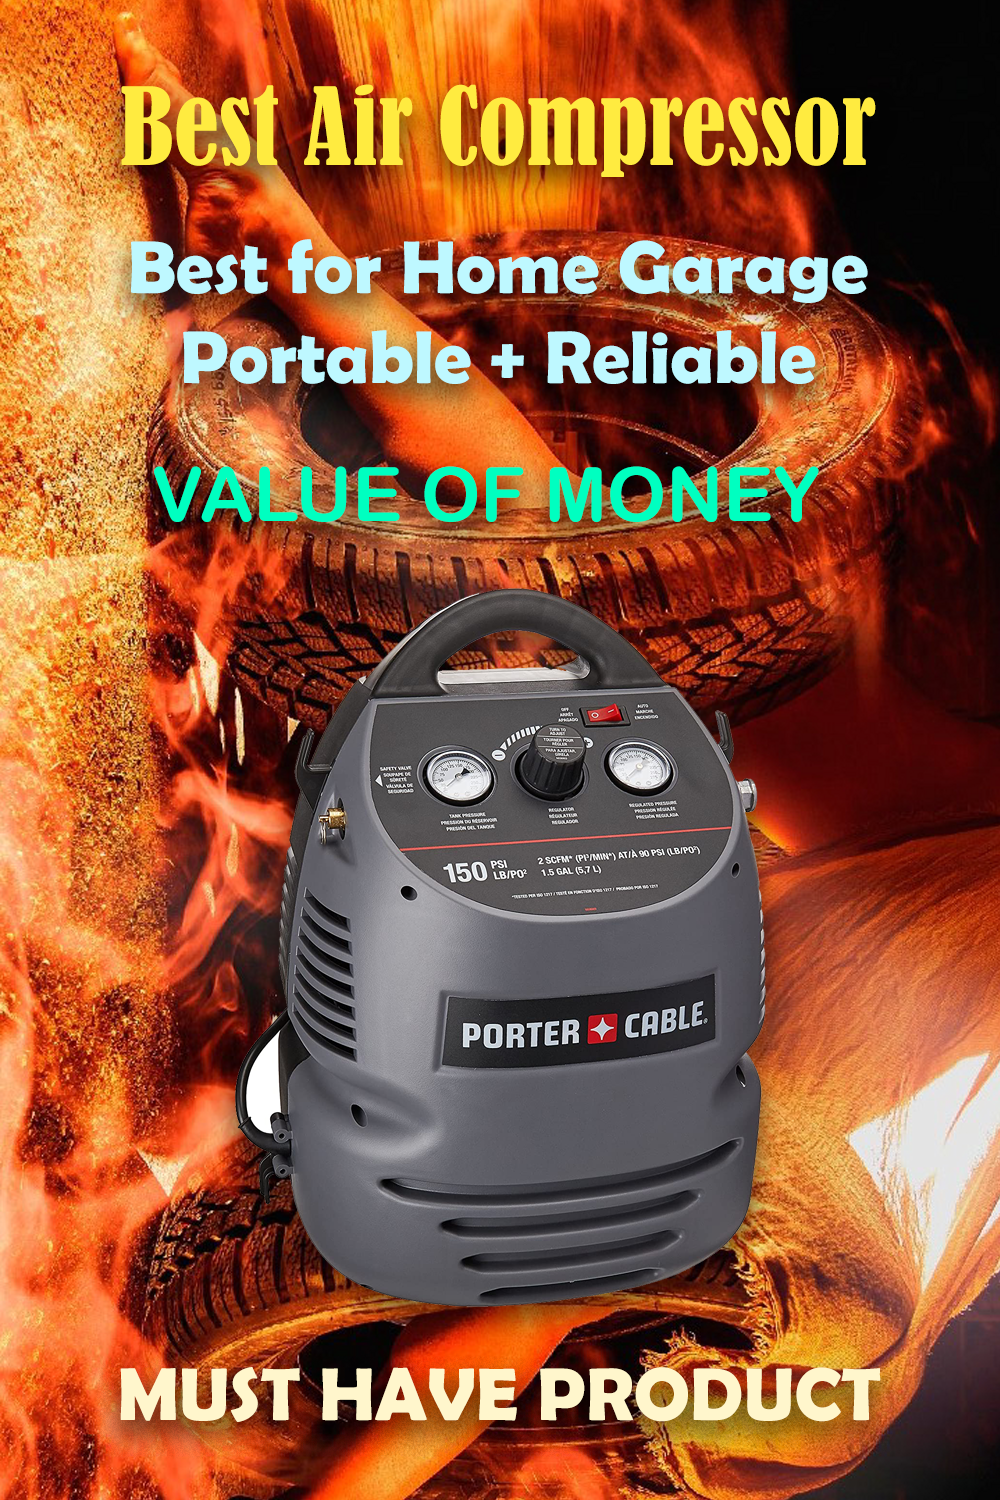 Best Air Compressor For Garage 2020 in 2020 Cool things